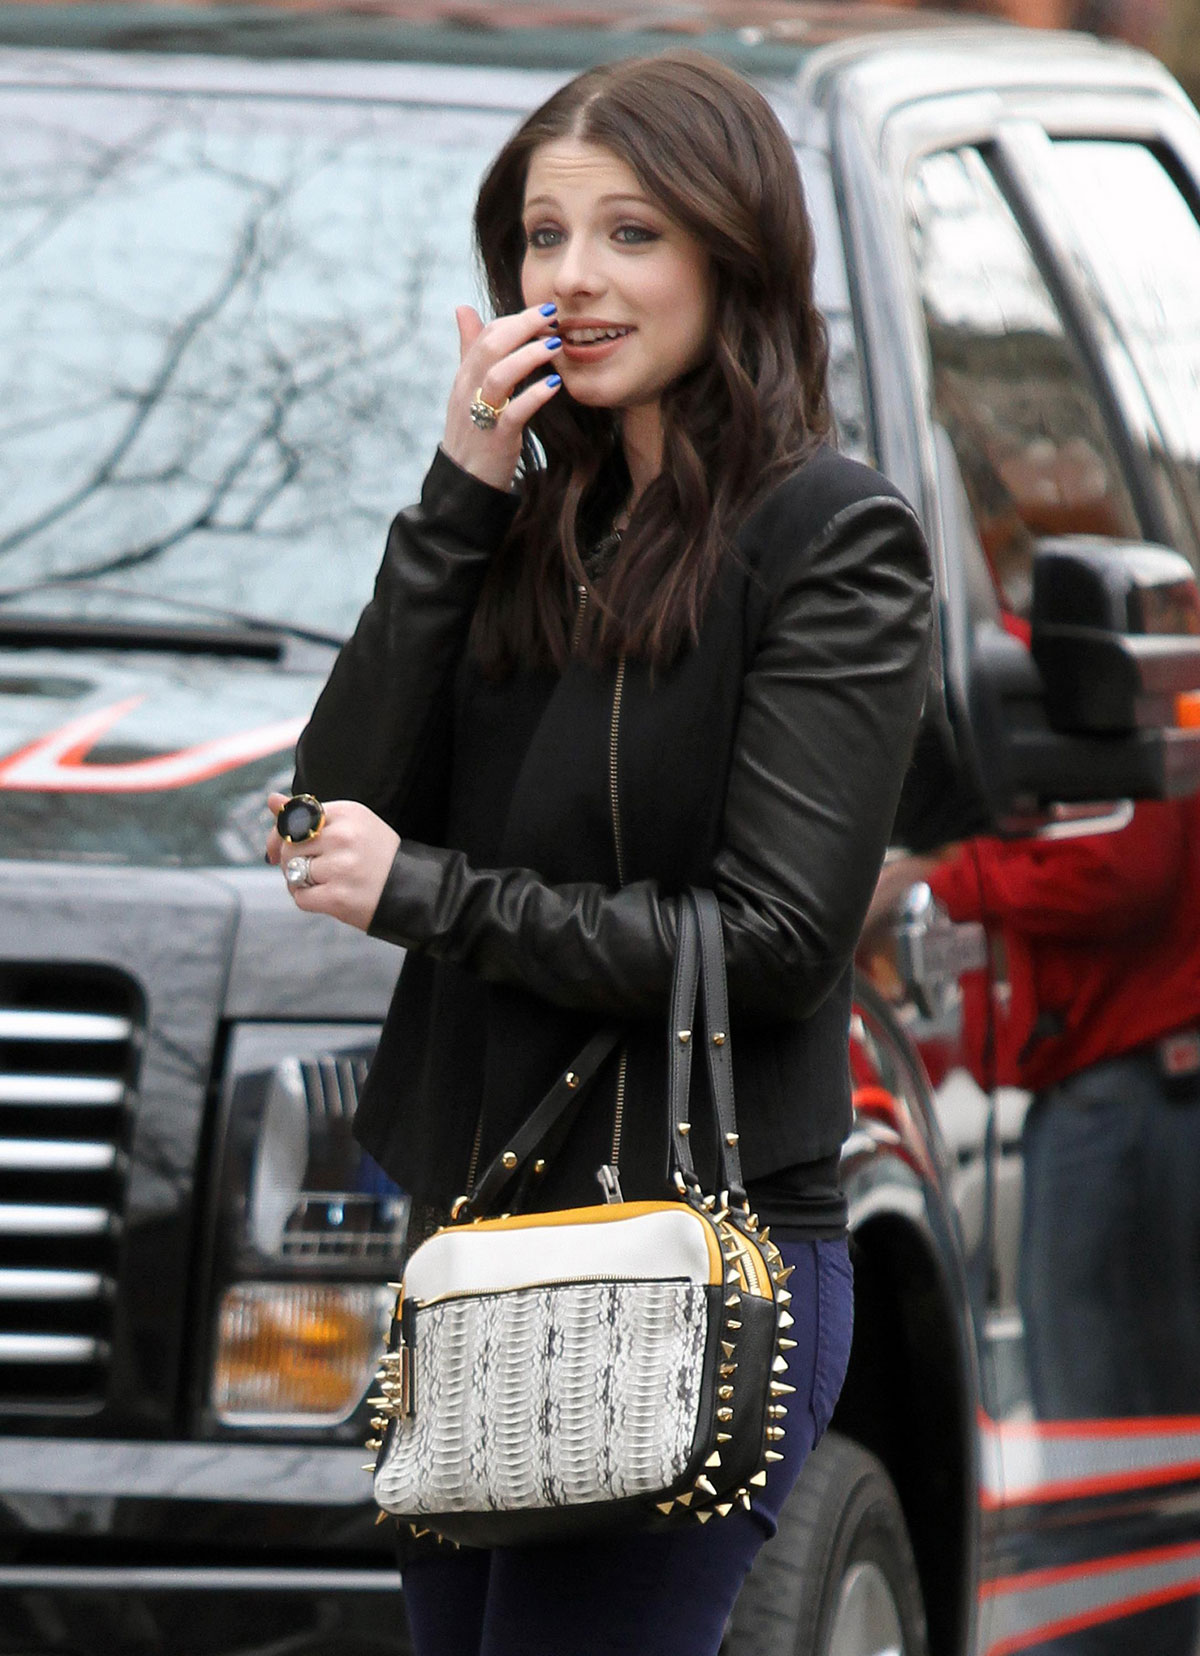 MICHELLE TRACHTENBERG on the Gossip Girl Set in New York 11 michelle trachtenberg on the gossip girl set in new york hawtcelebs